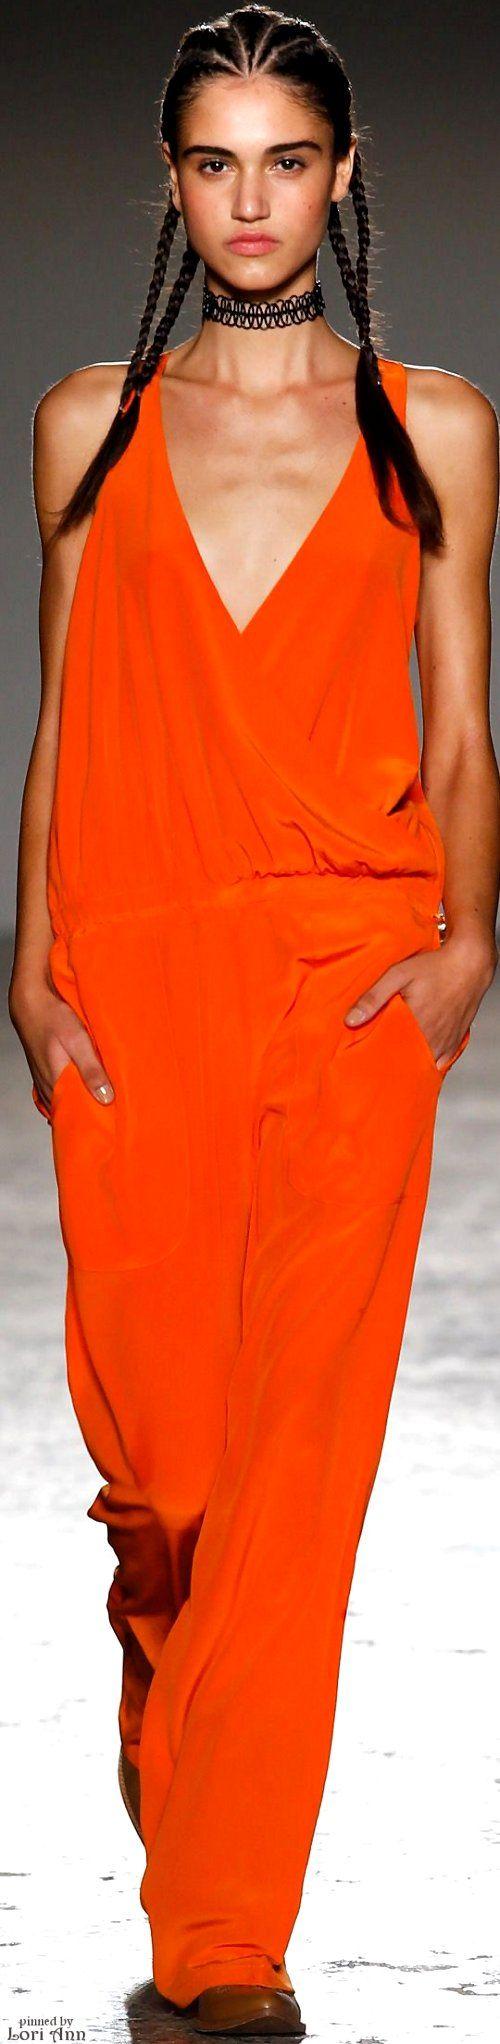 Cristiano Burani Spring 2016 RTW......  Plus, Register for the RMR4 International.info Product Line Showcase Webinar Broadcast at:www.rmr4international.info/500_tasty_diabetic_recipes.htm    ......................................      Don't miss our webinar!❤........